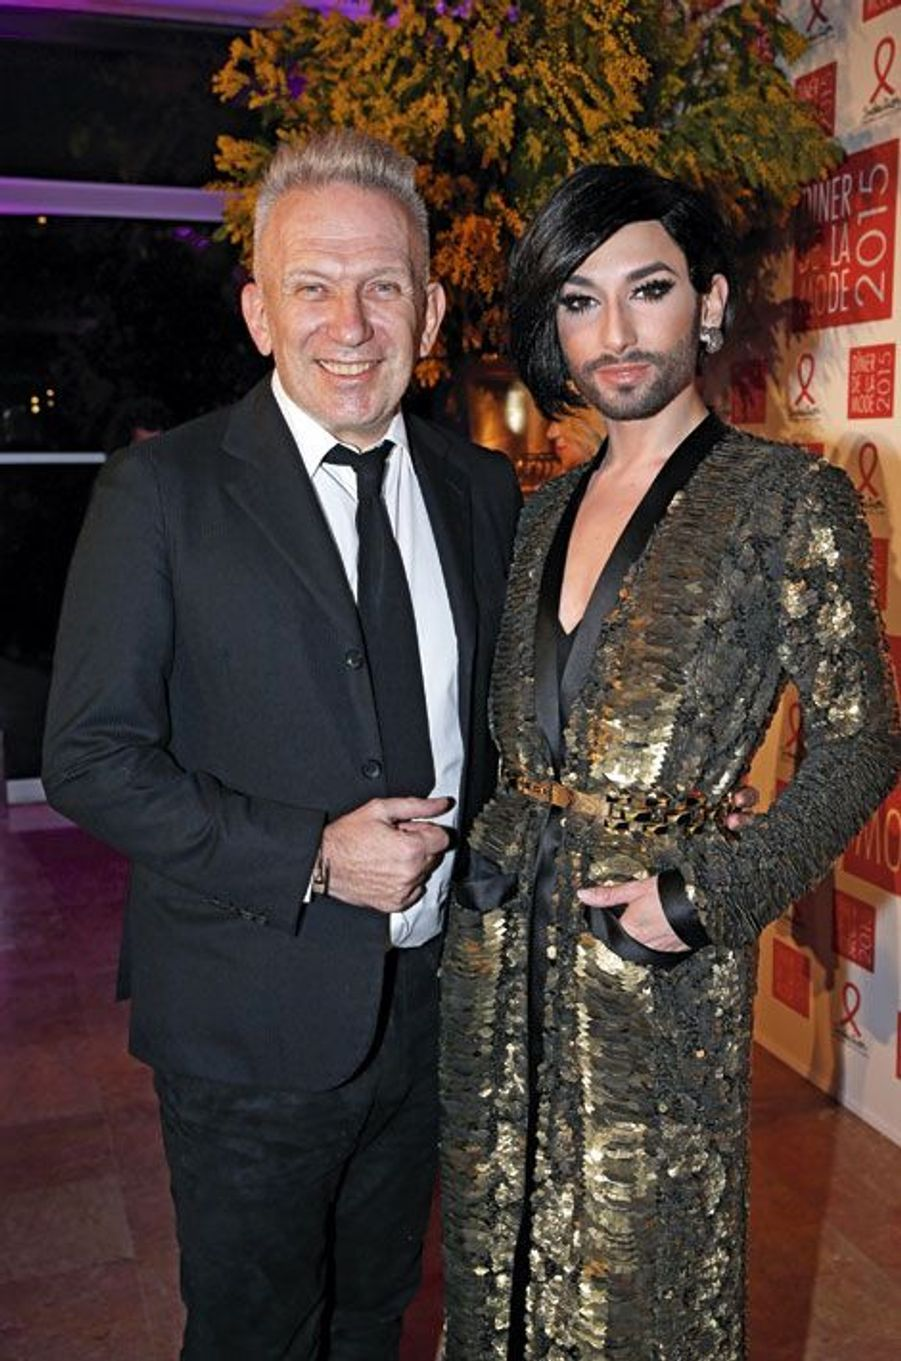 Jean Paul Gaultier, Conchita Wurst